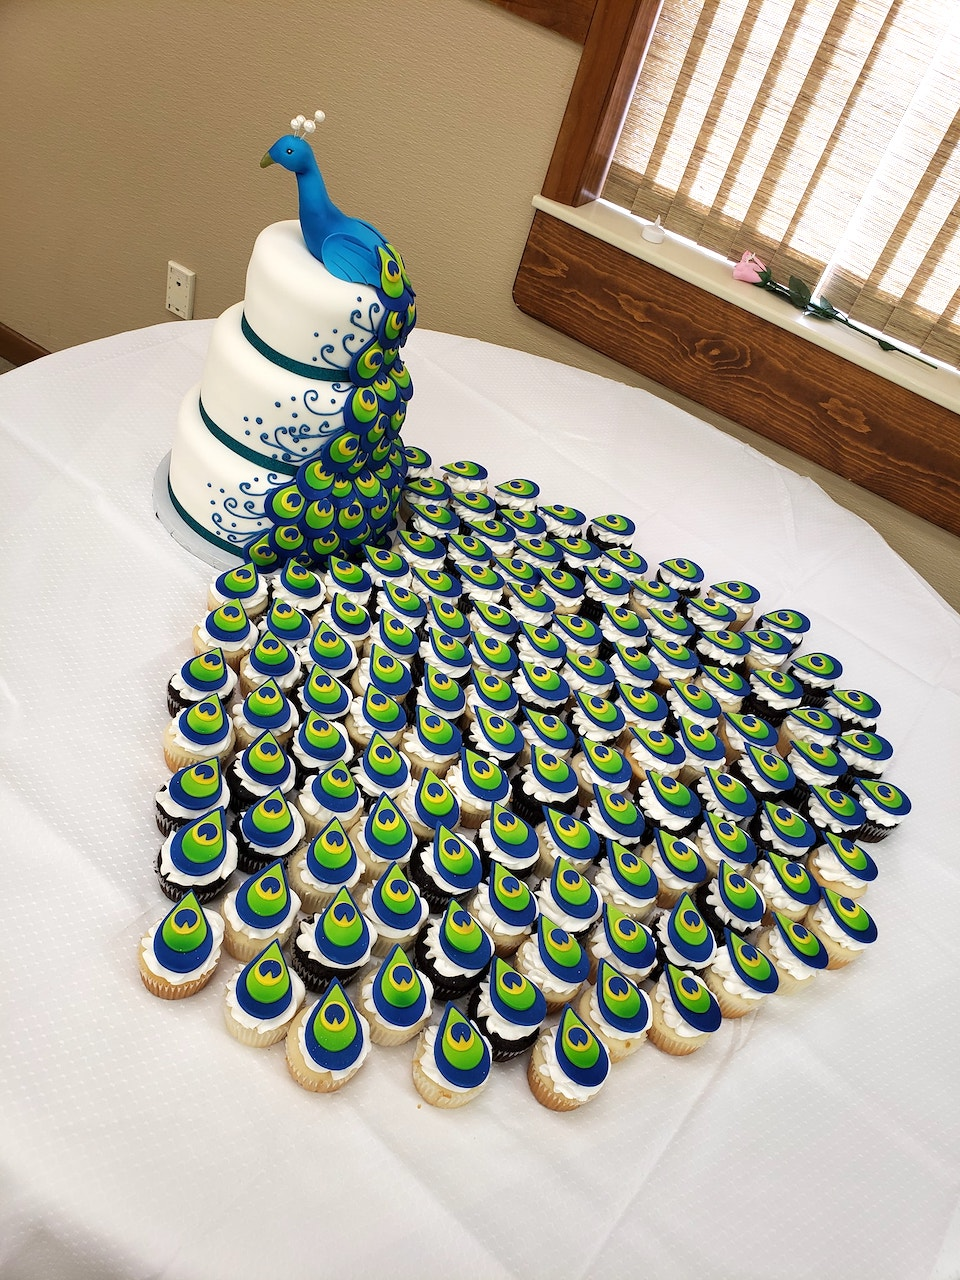 A Gorgeous Peacock Cake With Cupcake Tail Feathers